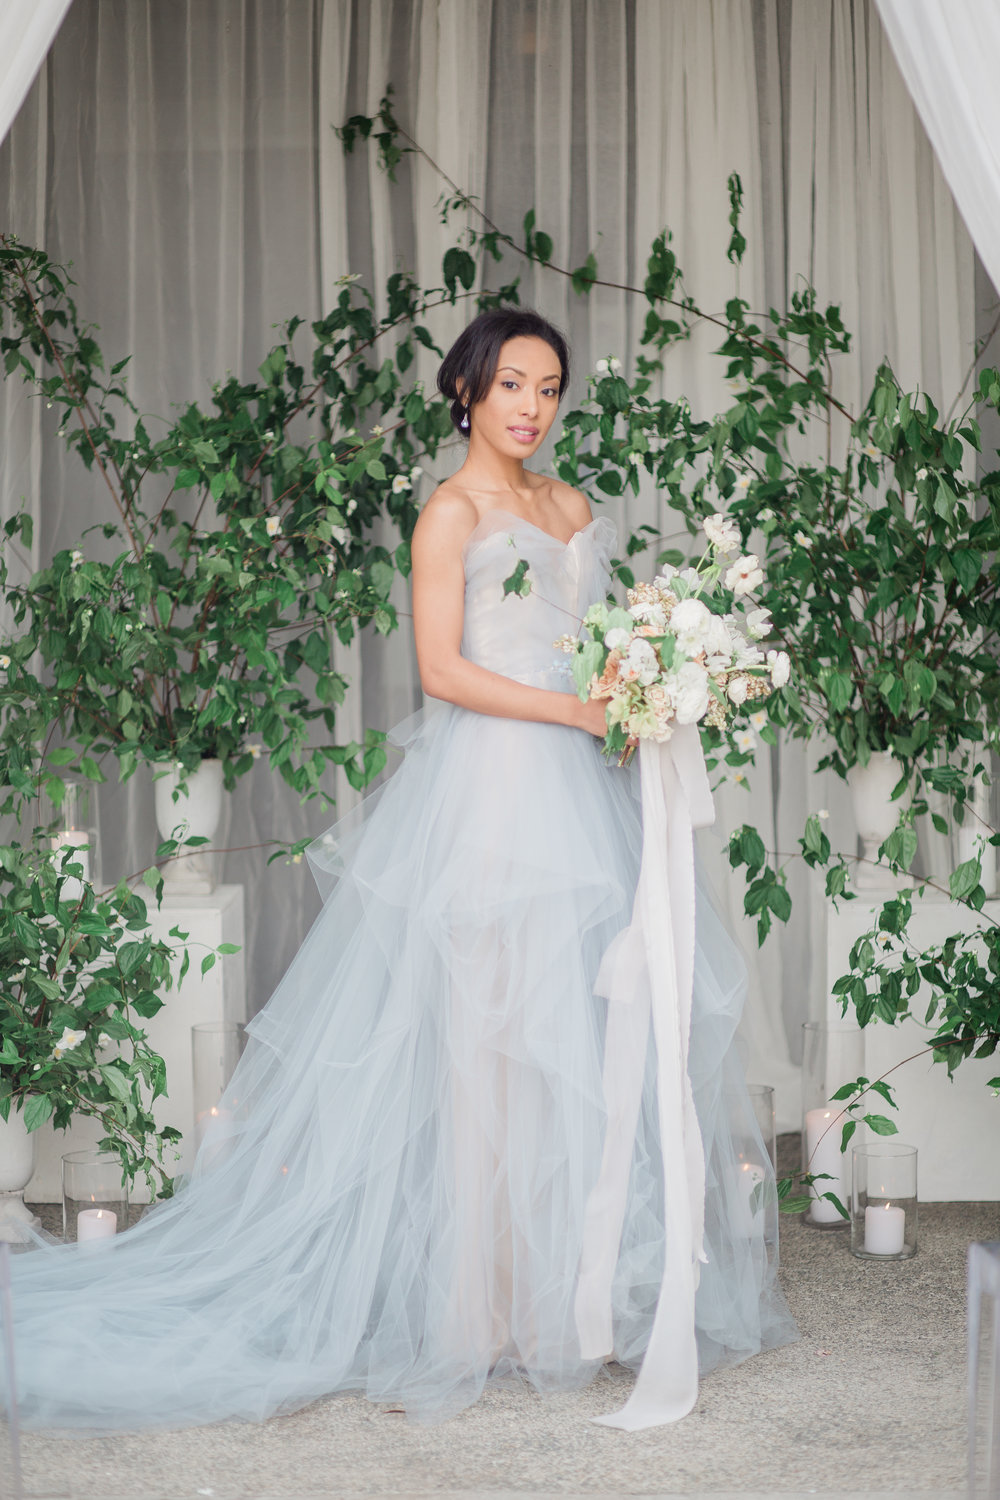 Oceane blue tulle wedding gownLittle White Dress- 0B2A7802.jpg